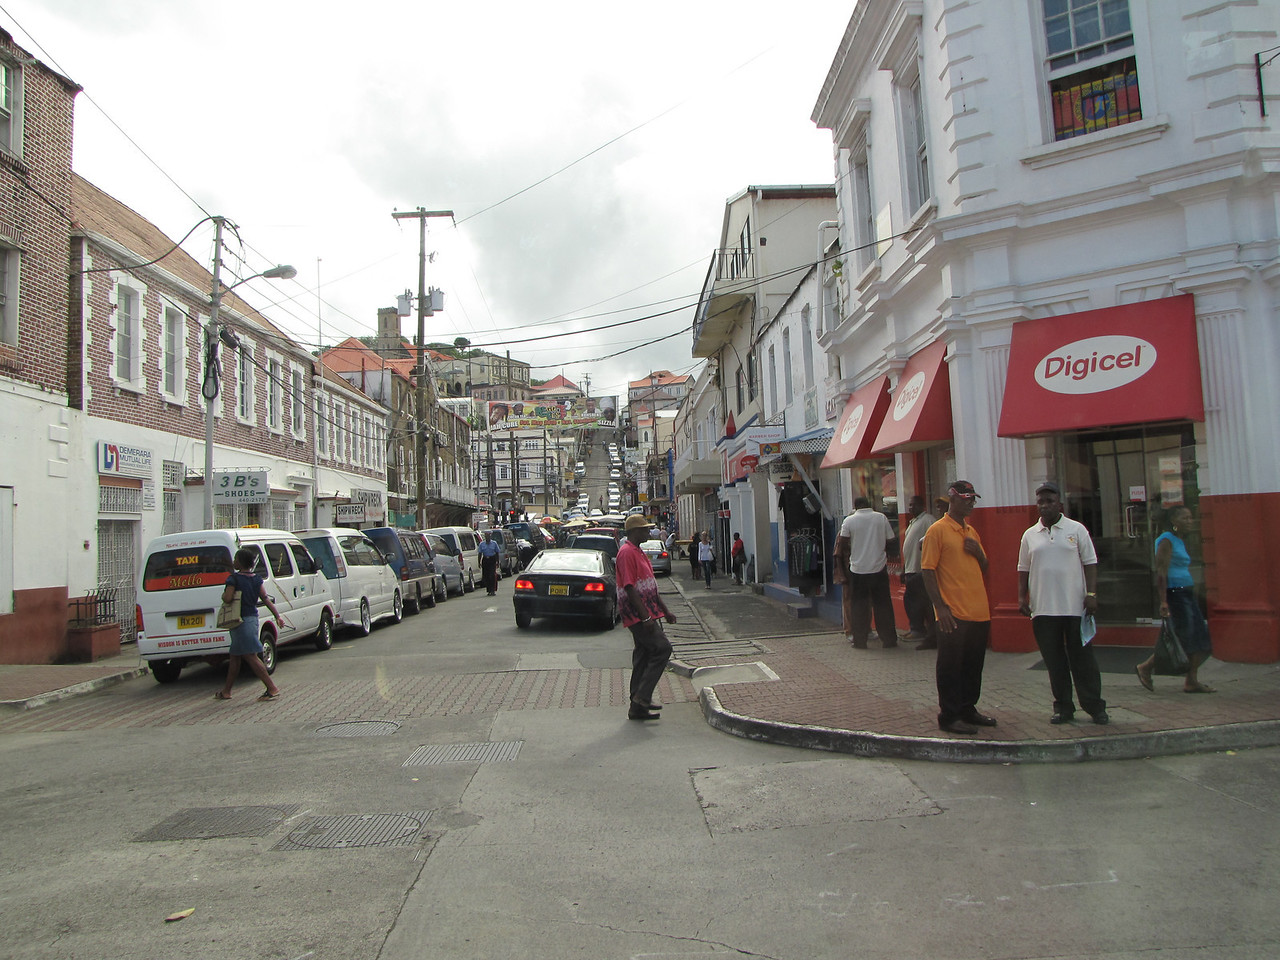 A street view of St. George's